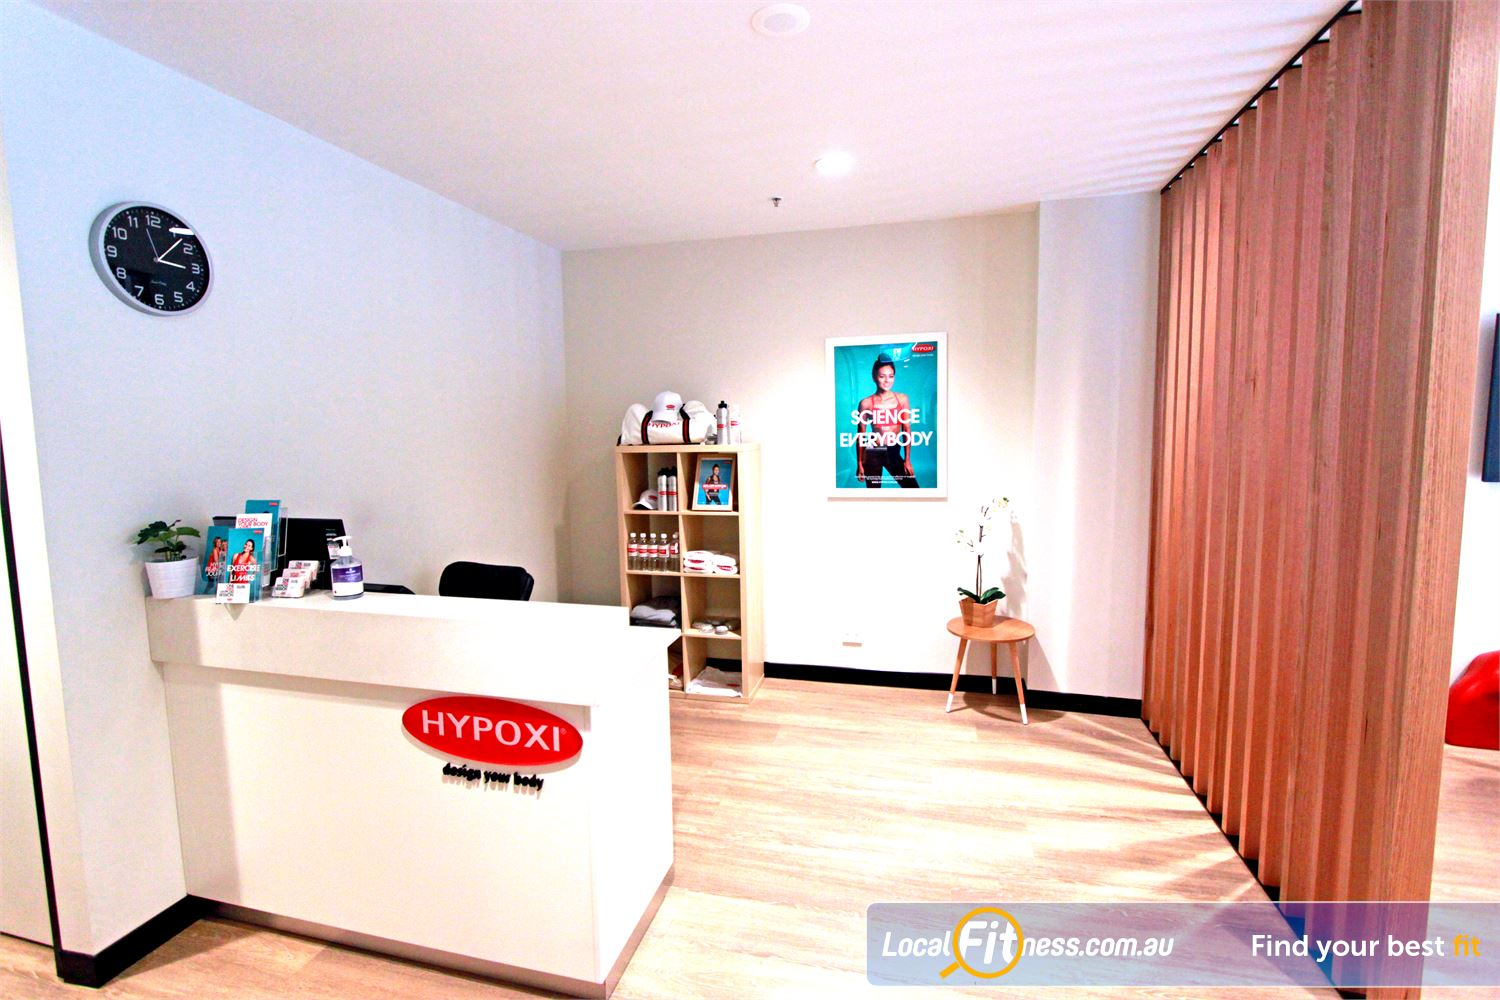 Goodlife Health Clubs Near South Melbourne Our wonderful Hypoxi team will give you the right advice.